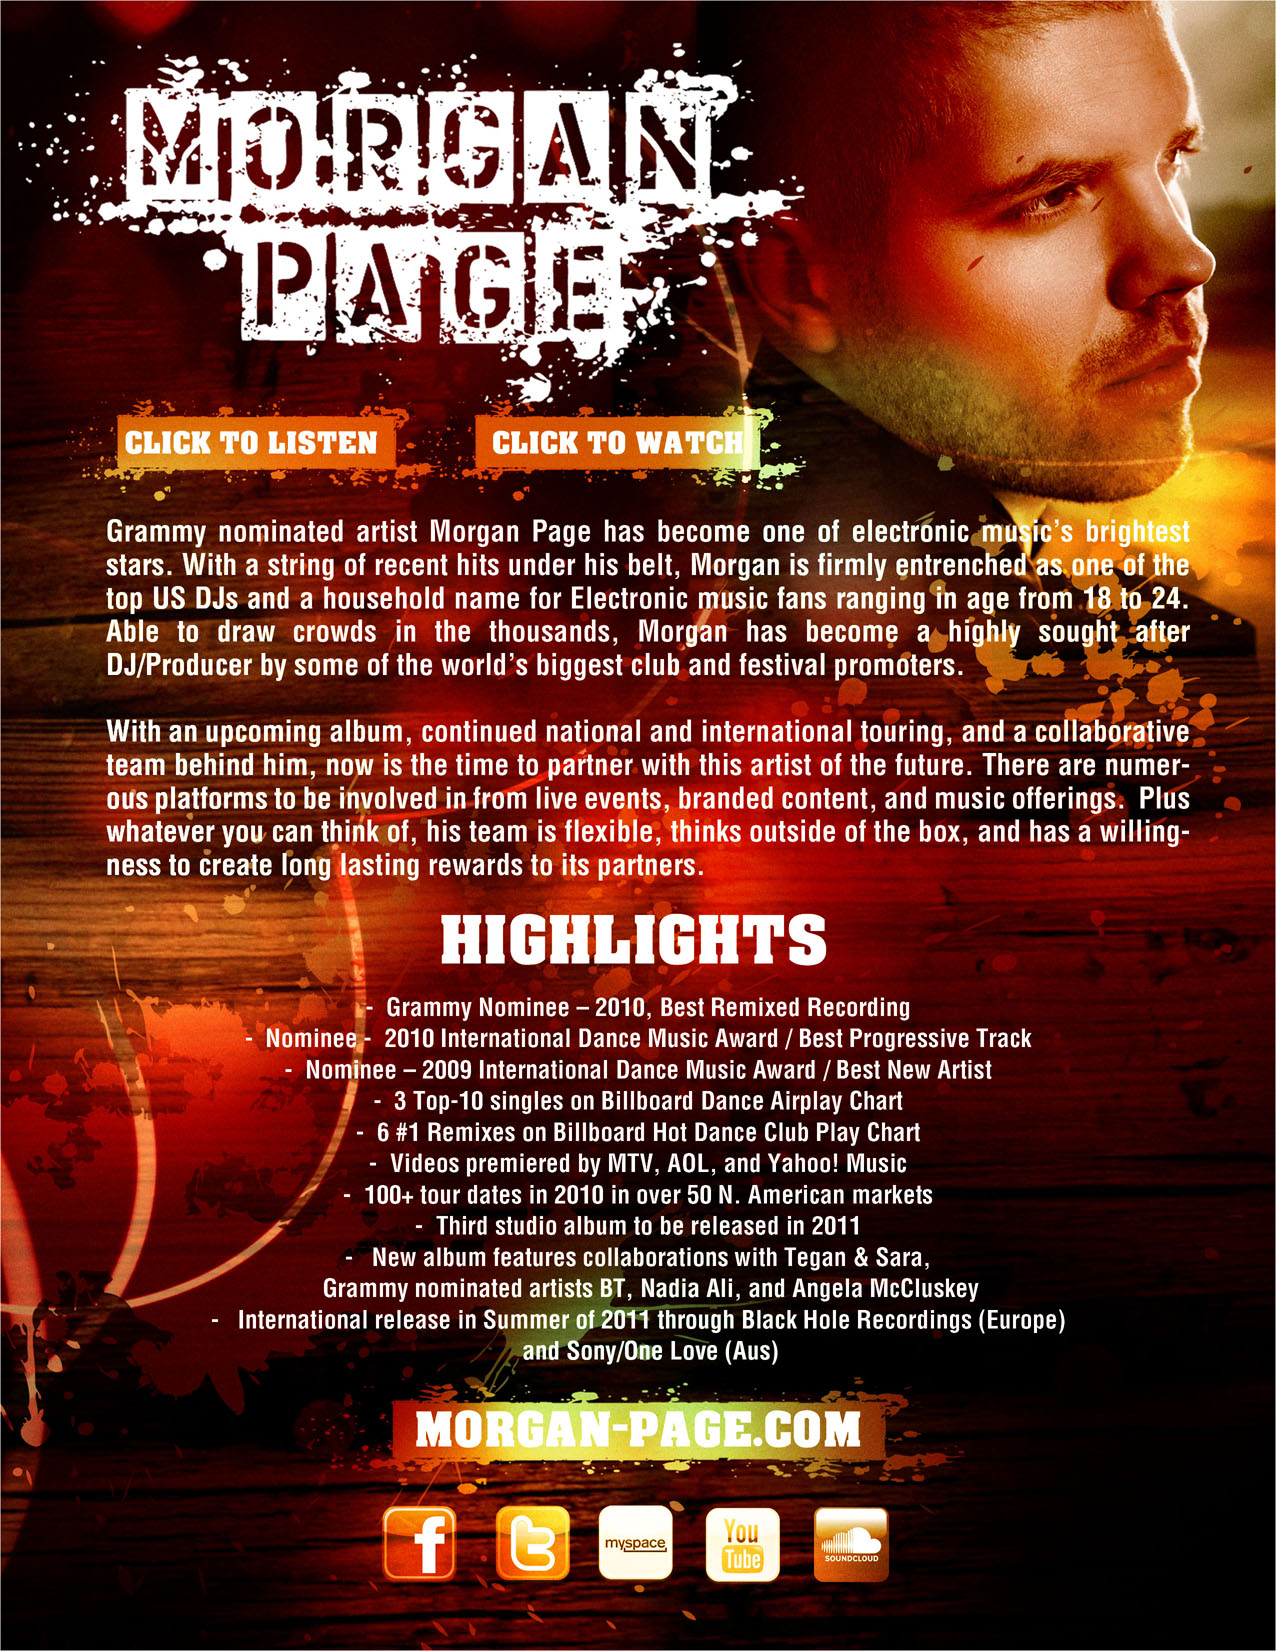 MP_PAGES_2.jpg